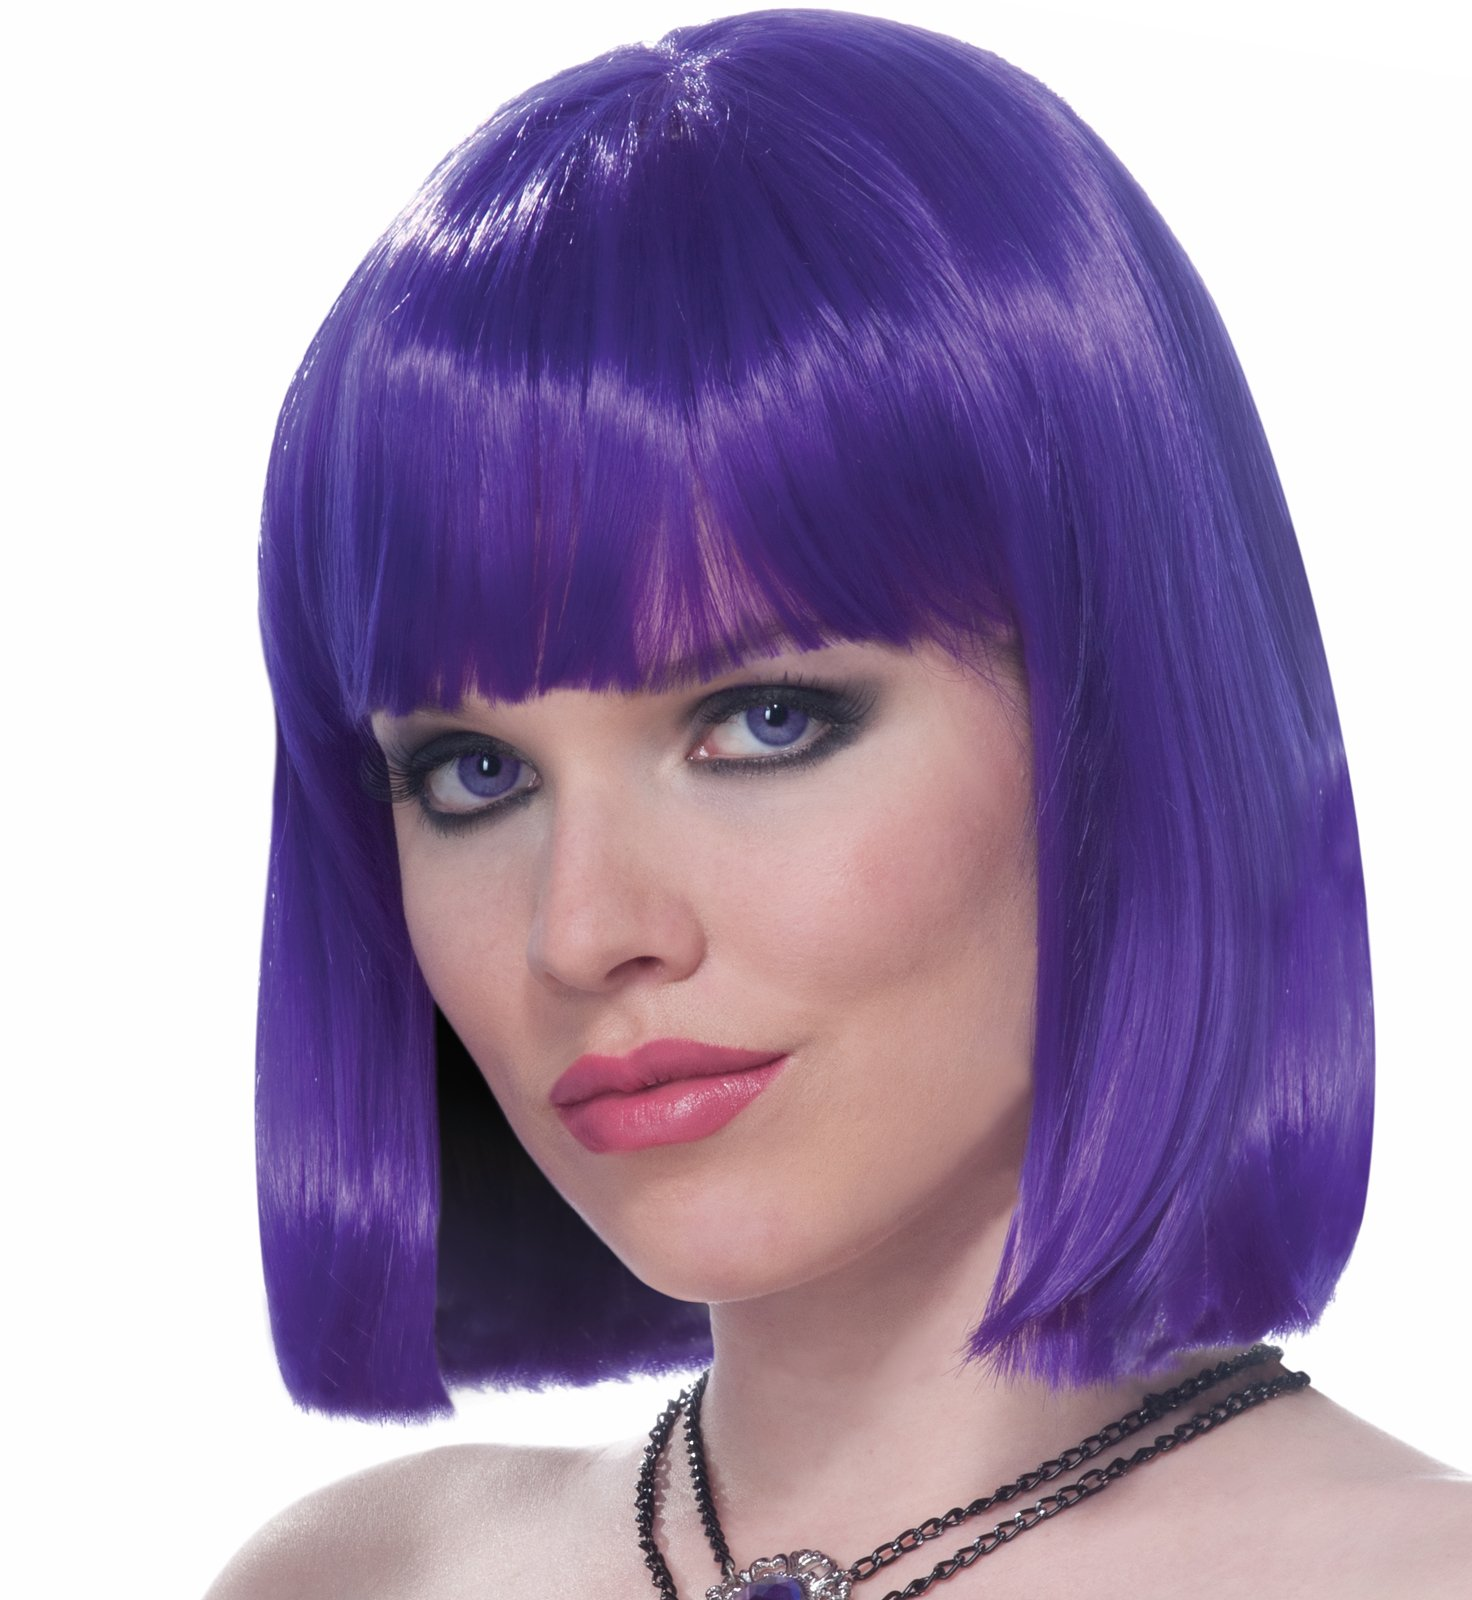 Vibe (Purple) Adult Wig